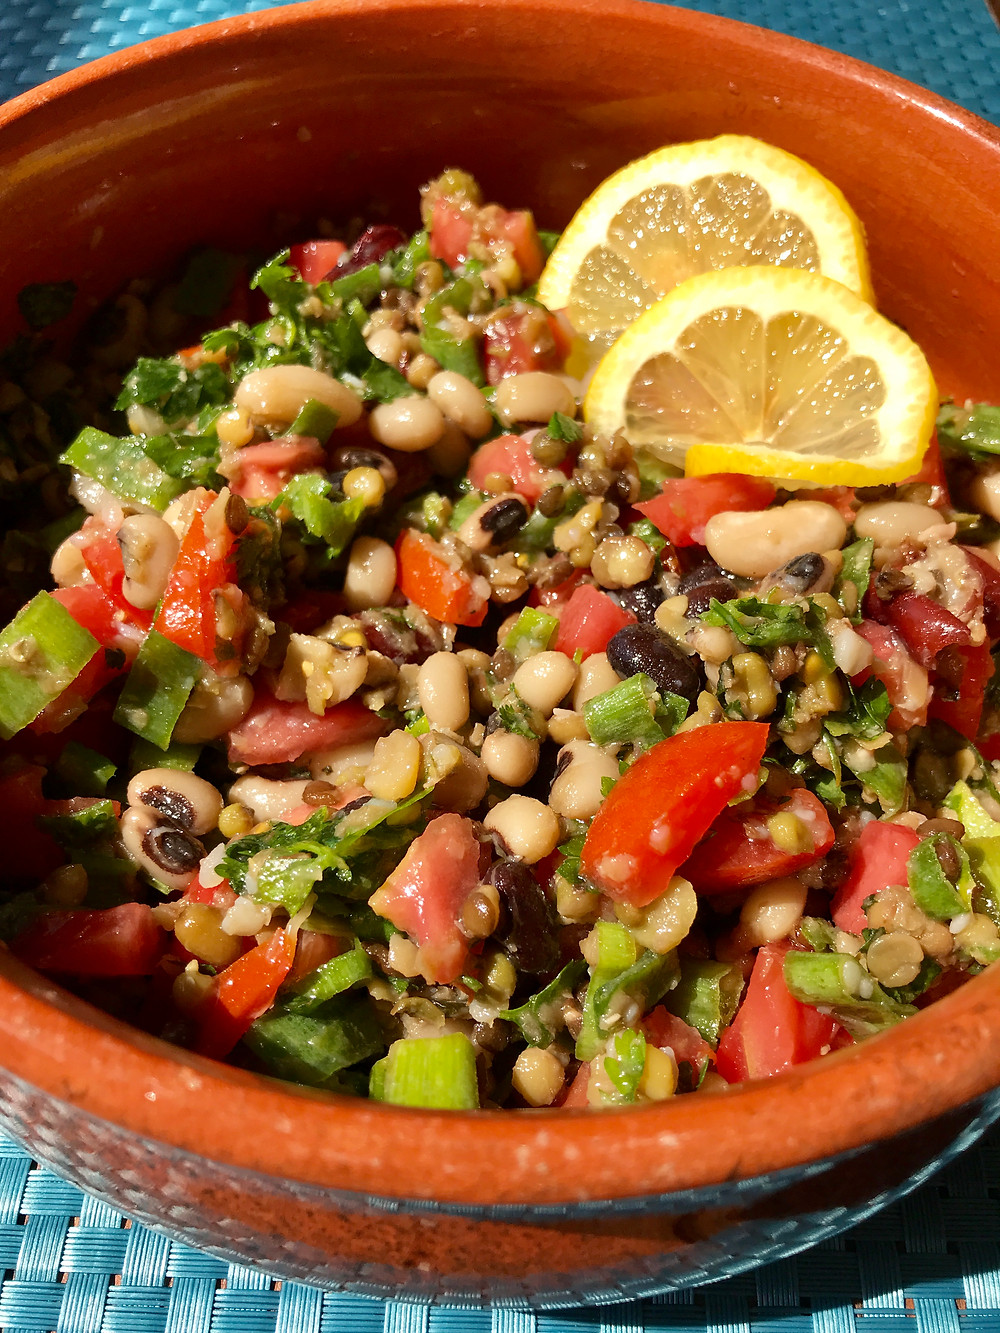 Mixed legume pulse salad recipe